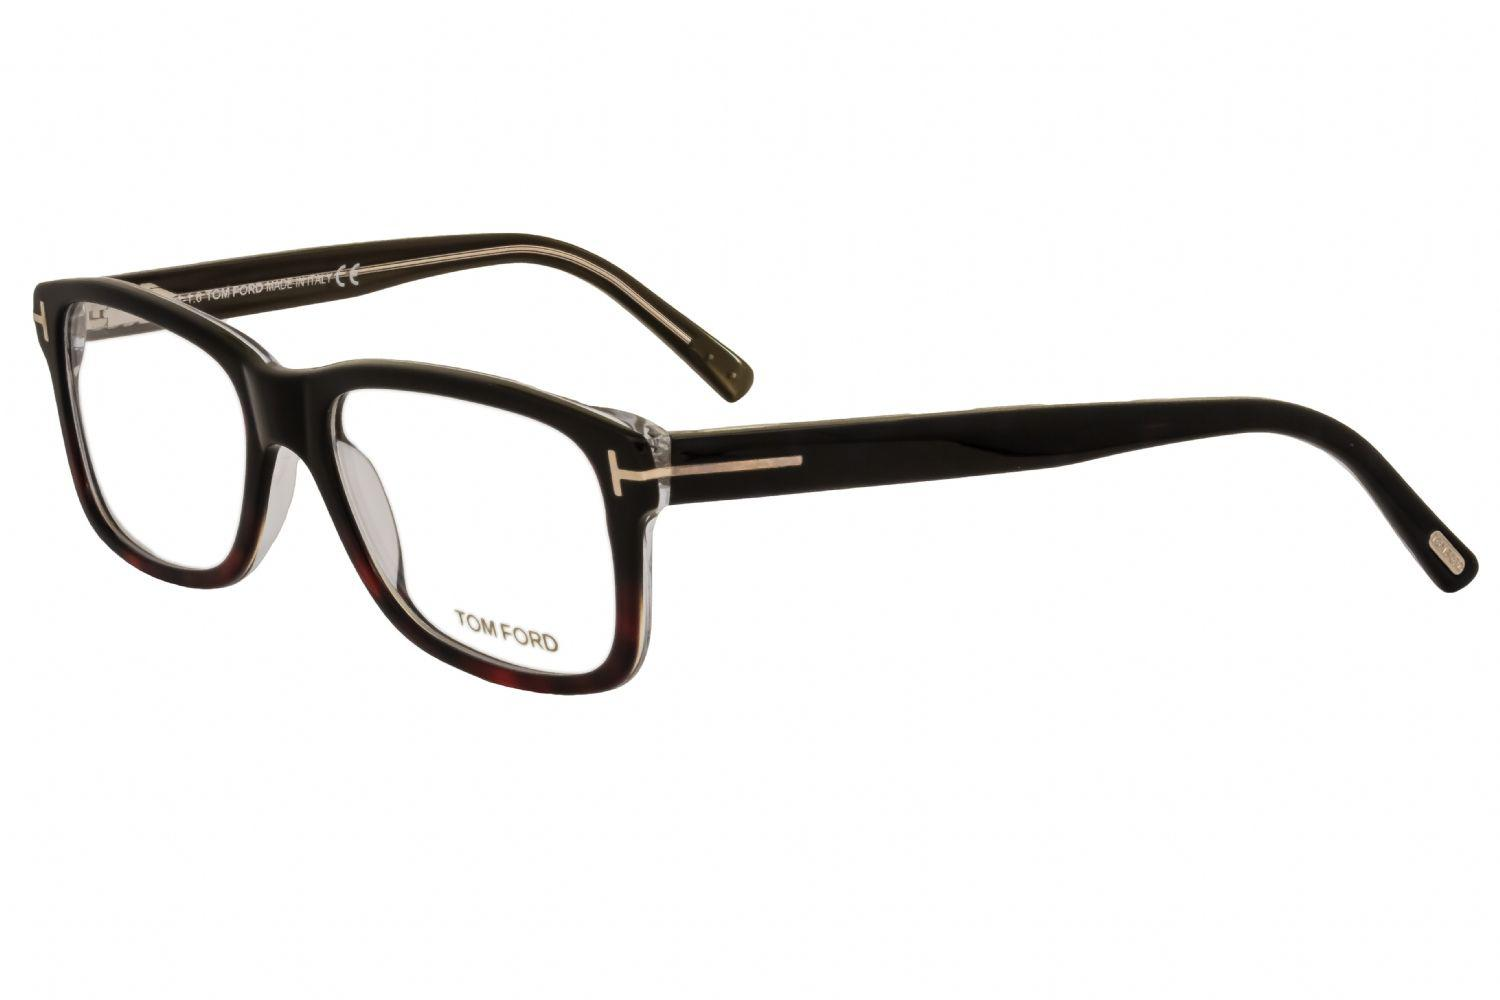 0751cd91aade Tom Ford - Ft5163 Rectangular Unisex Eyeglasses Black Gradient Havana    Clear Lenses - Lyst. View fullscreen